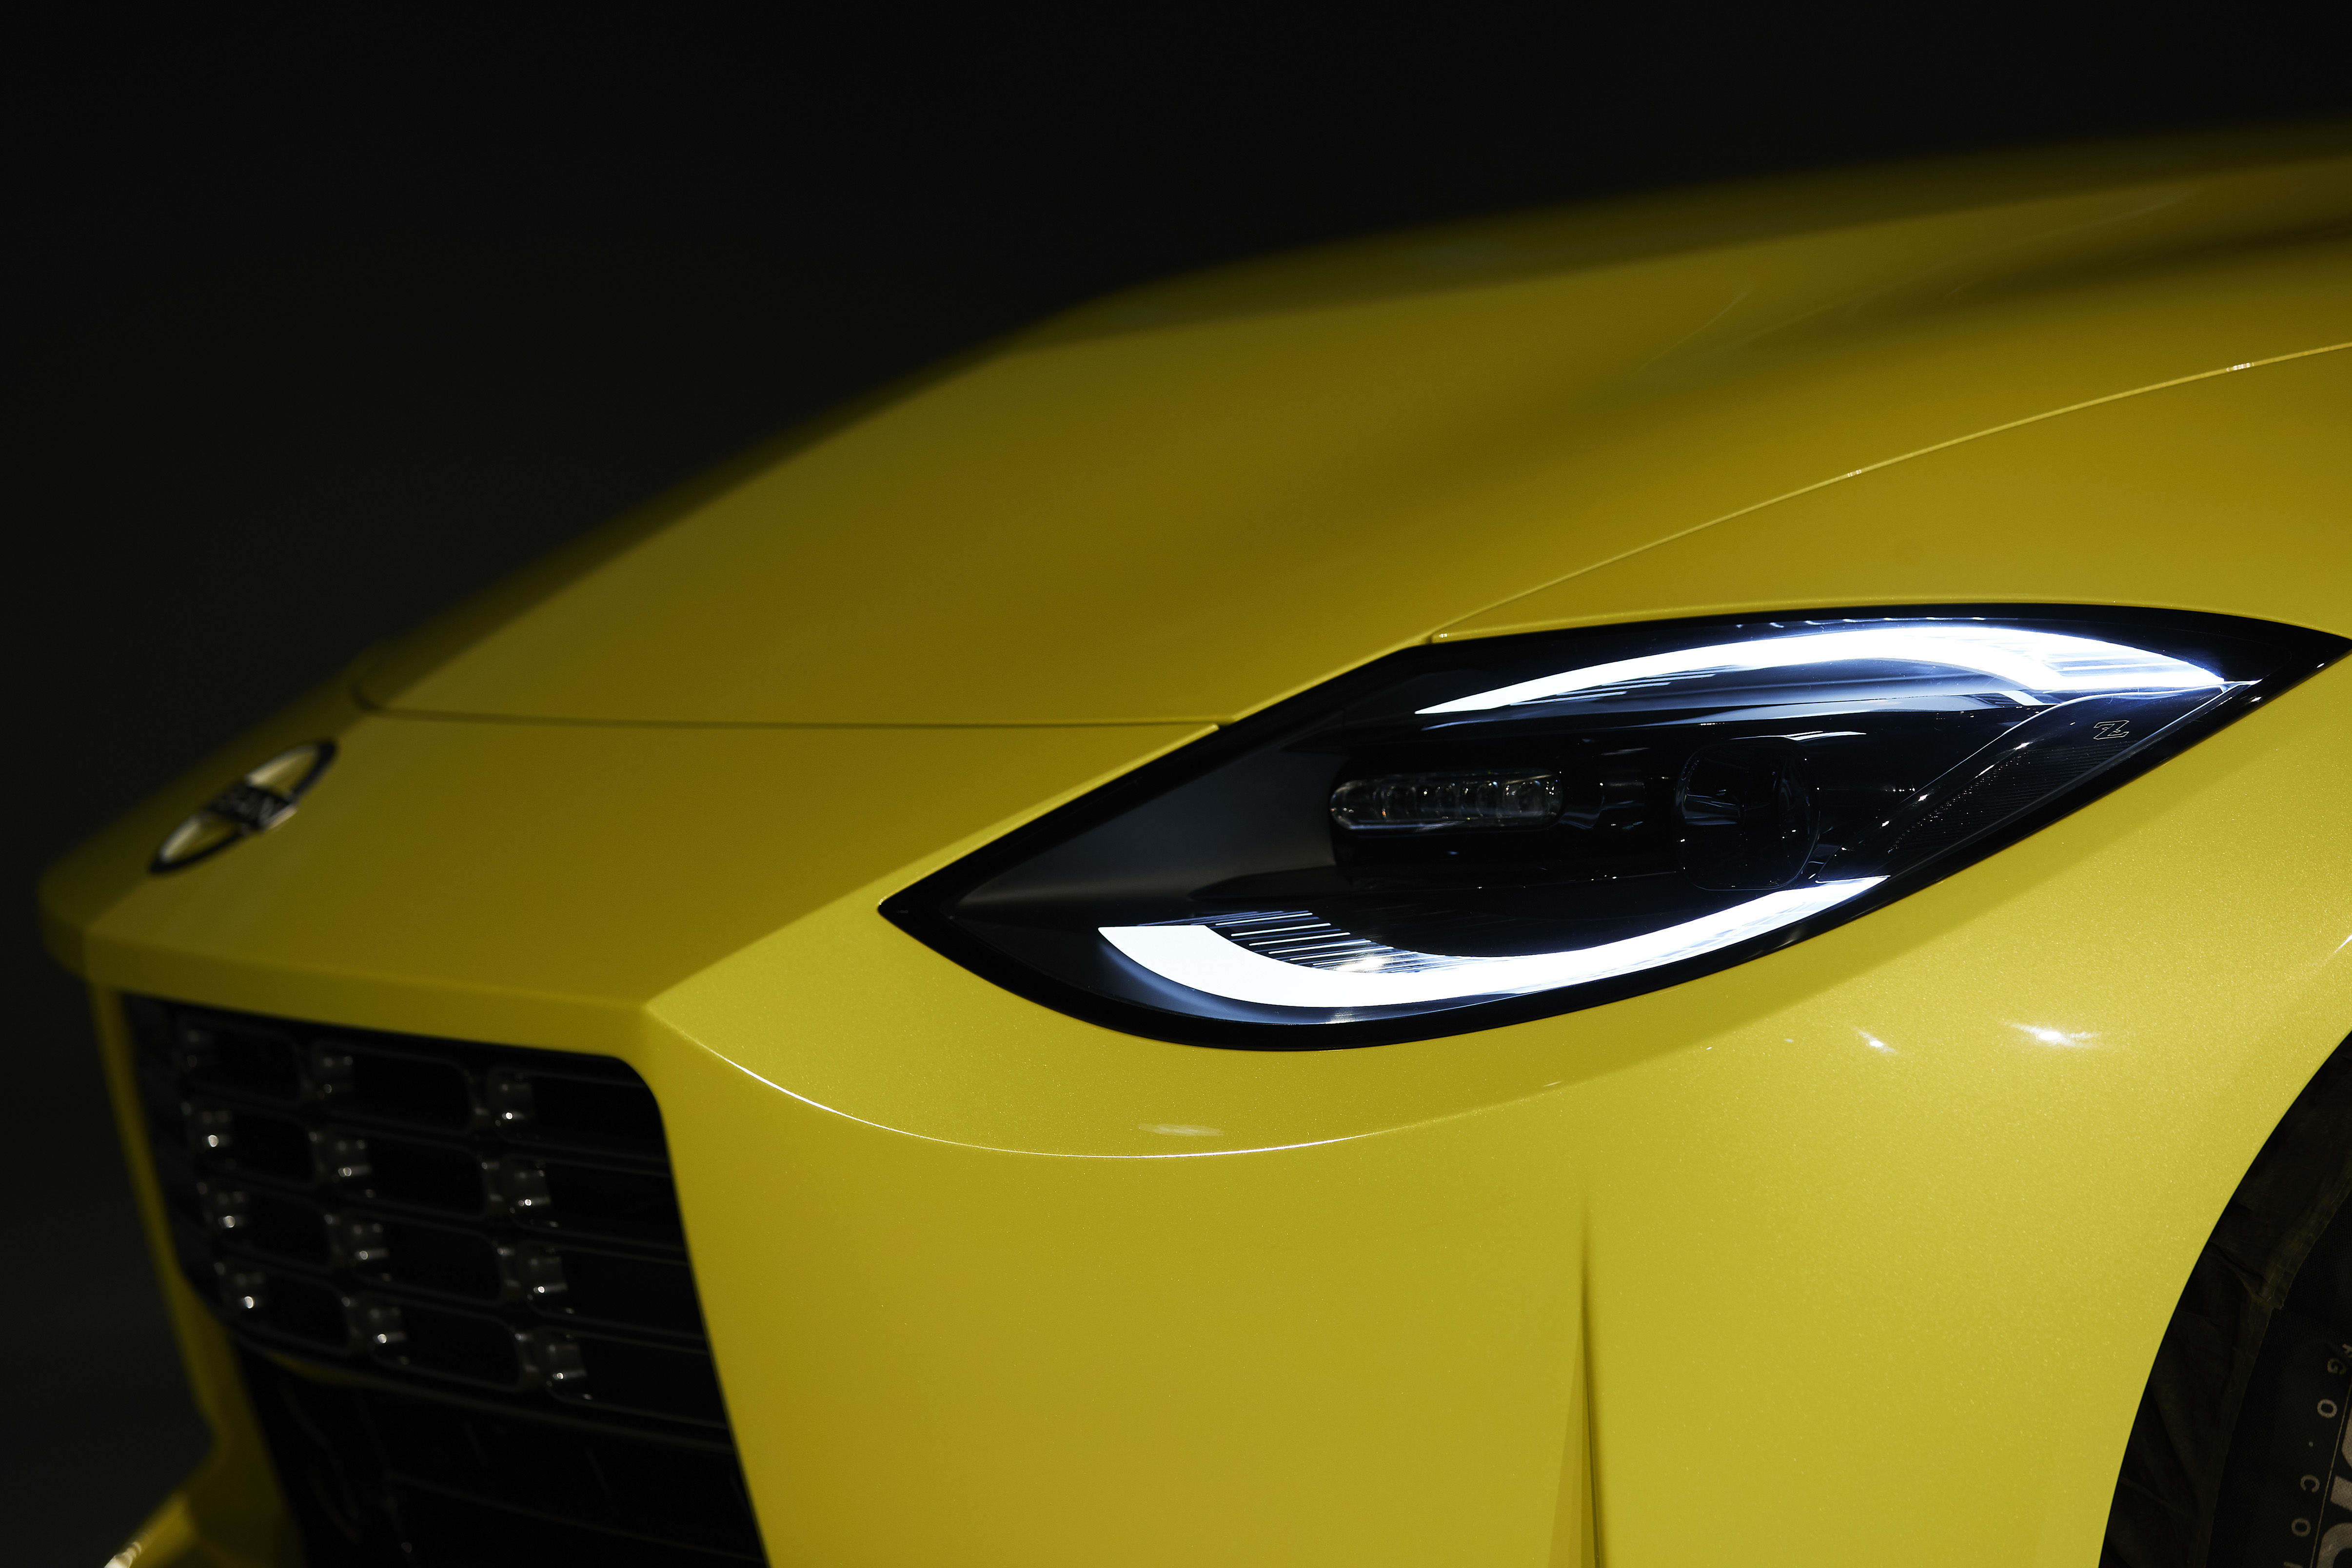 The Z Proto benefits from a straight yet stylish exterior profile with eye-shaped LED headlights, squar-ish grille and an elongated hood.